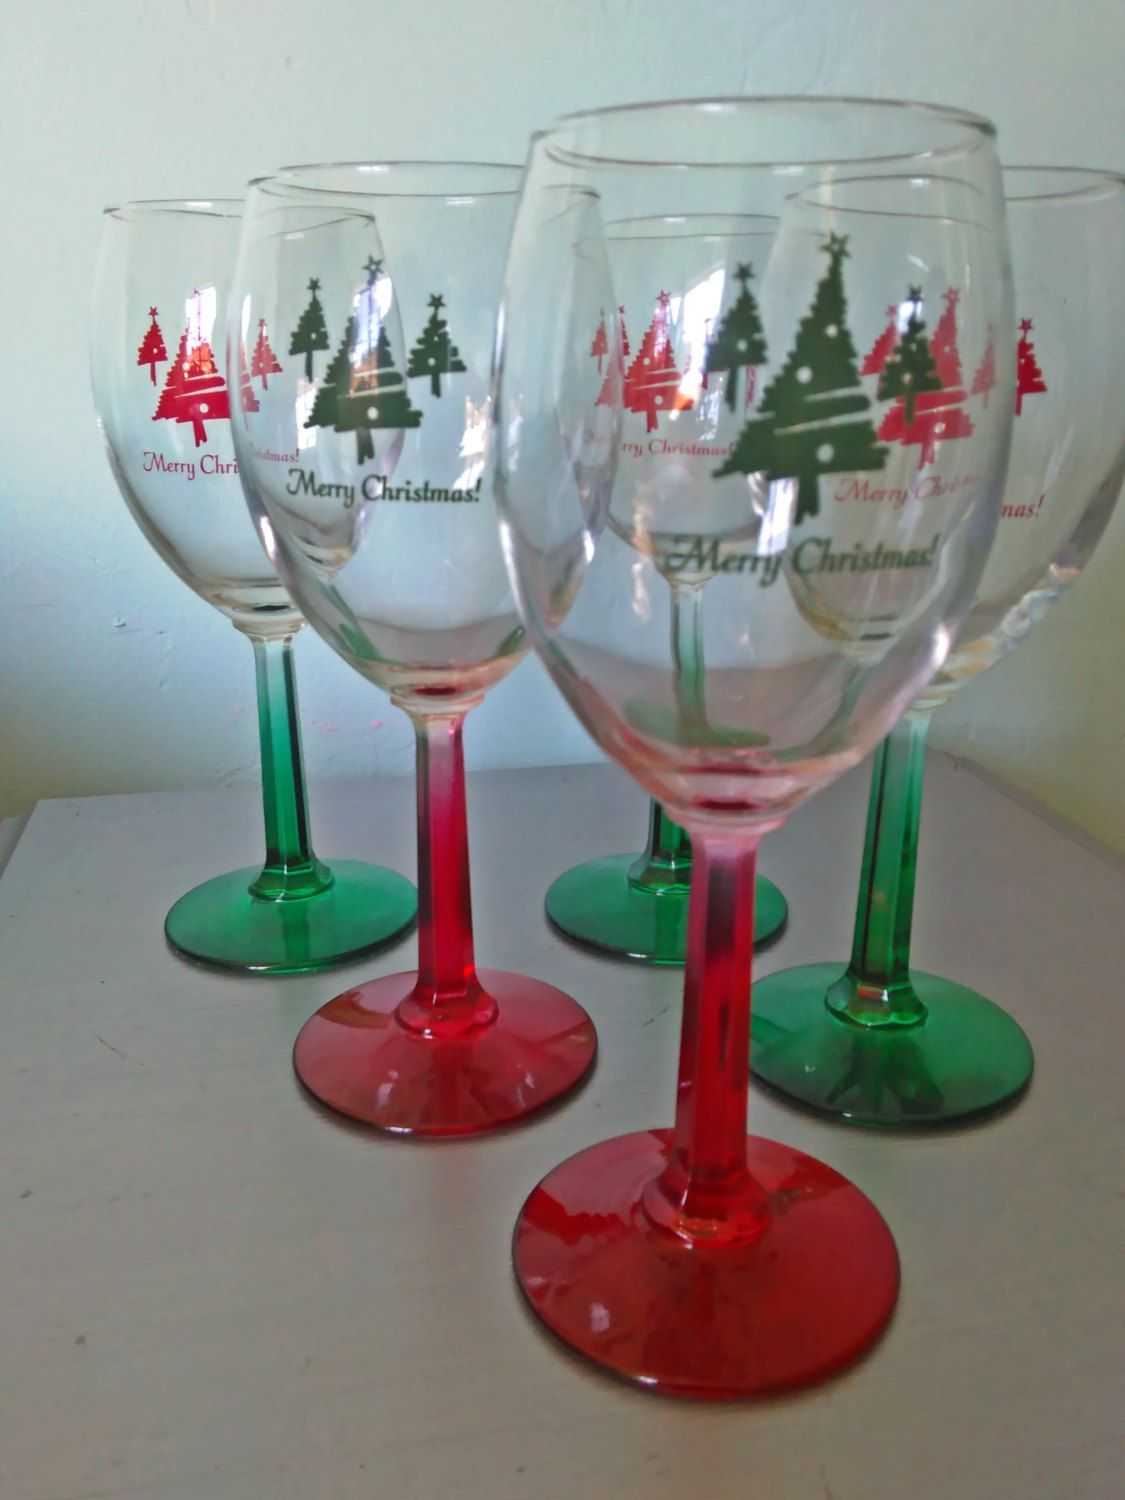 Vintage Wine Glasses Merry Christmas Set Of Five Red And Green Hexagonal Stem Vintage Merry Christm Christmas Wine Glasses Vintage Wine Merry Christmas Vintage